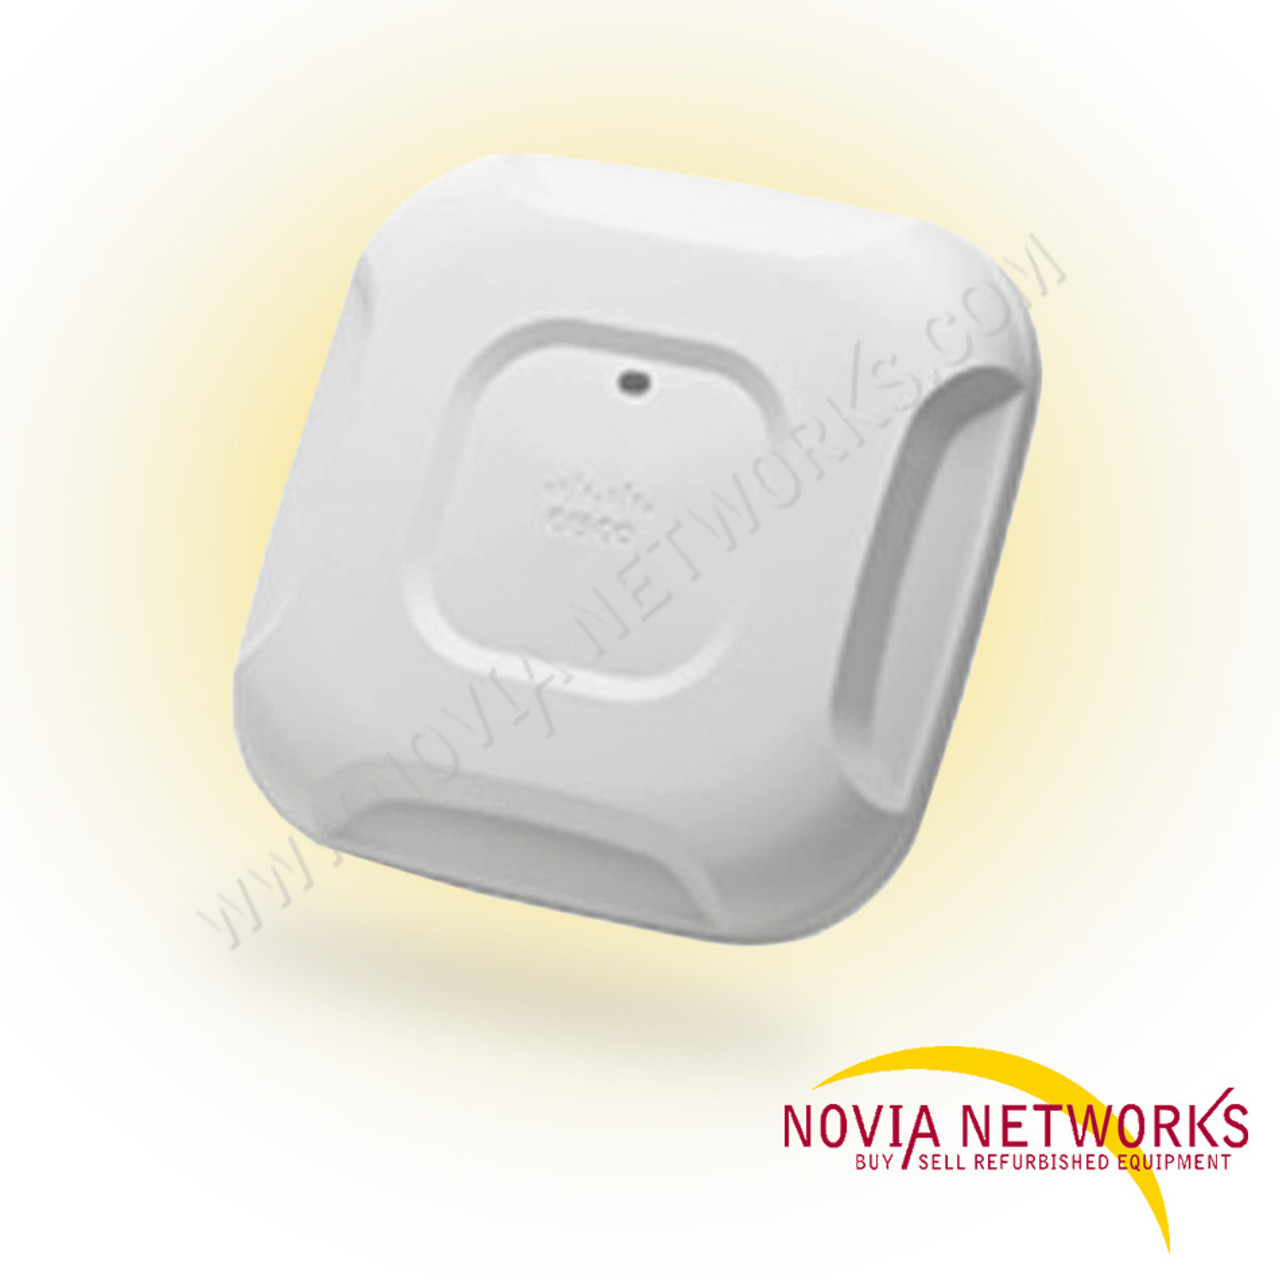 AIR-CAP3702I-B-K9 | Cisco Aironet 3700 Series | Novia Networks